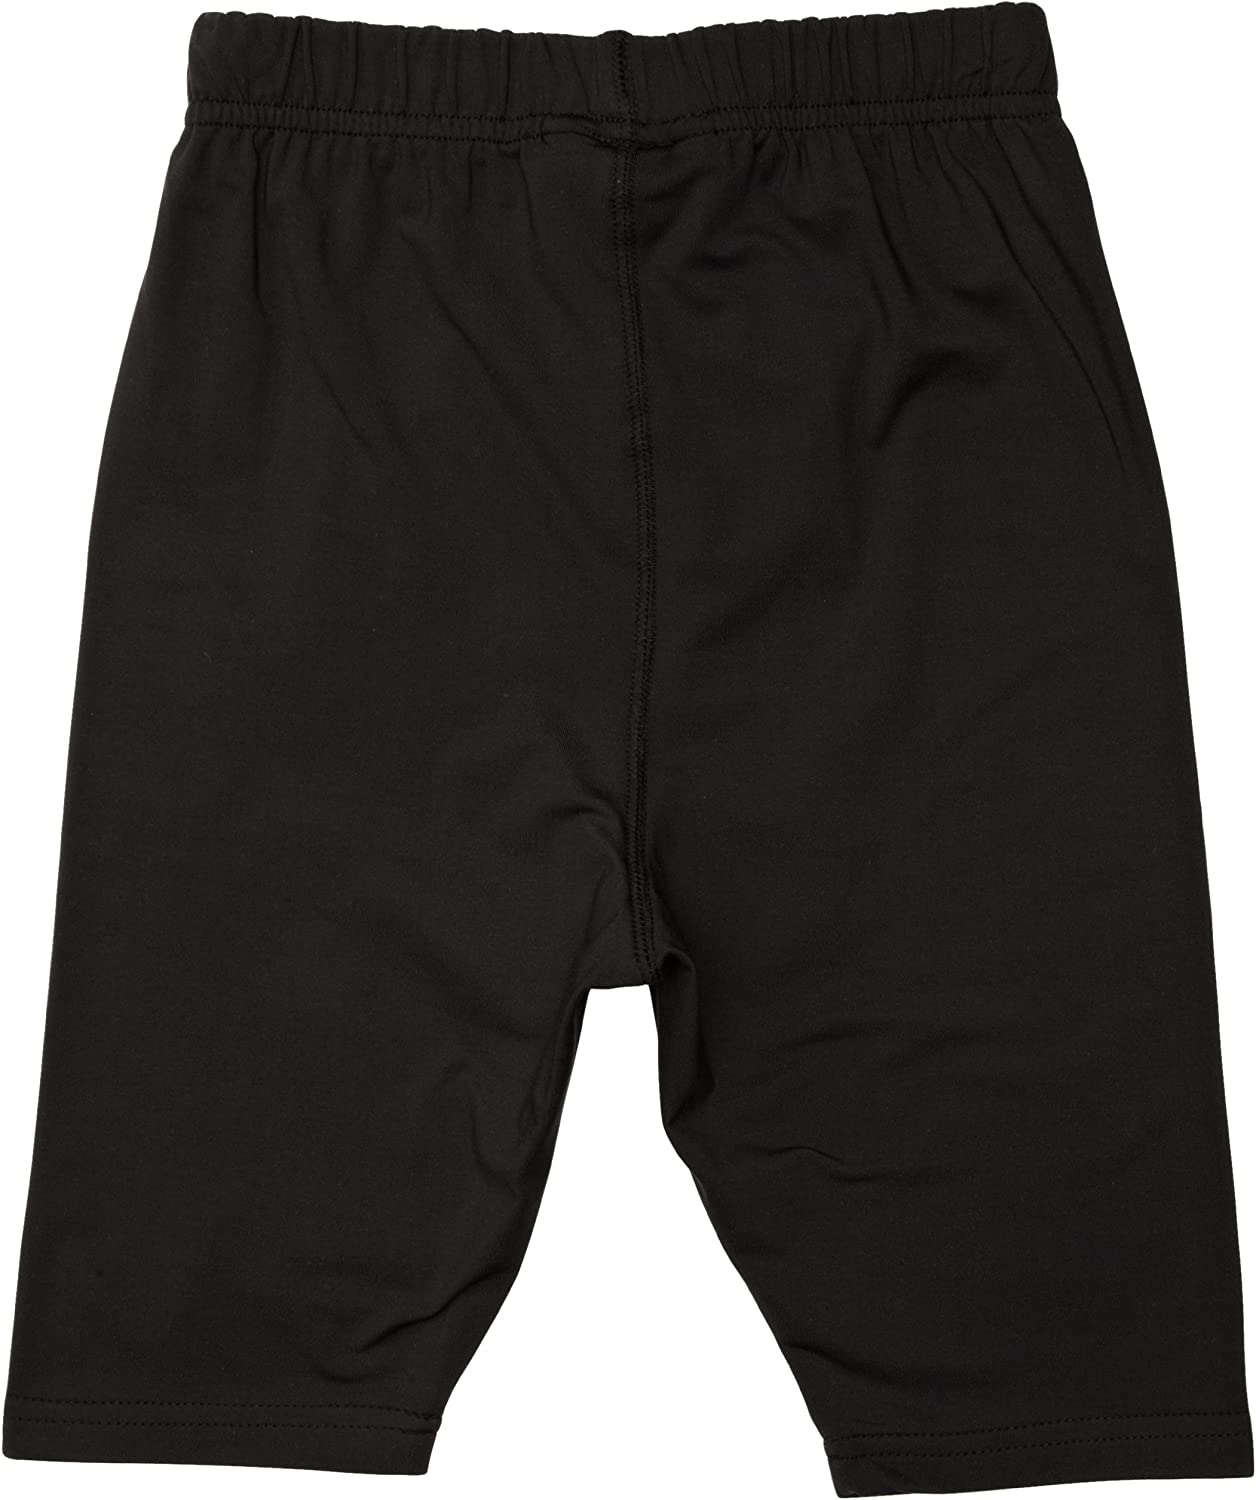 Medium Boys New Kooga Kid/'s Power Pro Short Baselayer Black